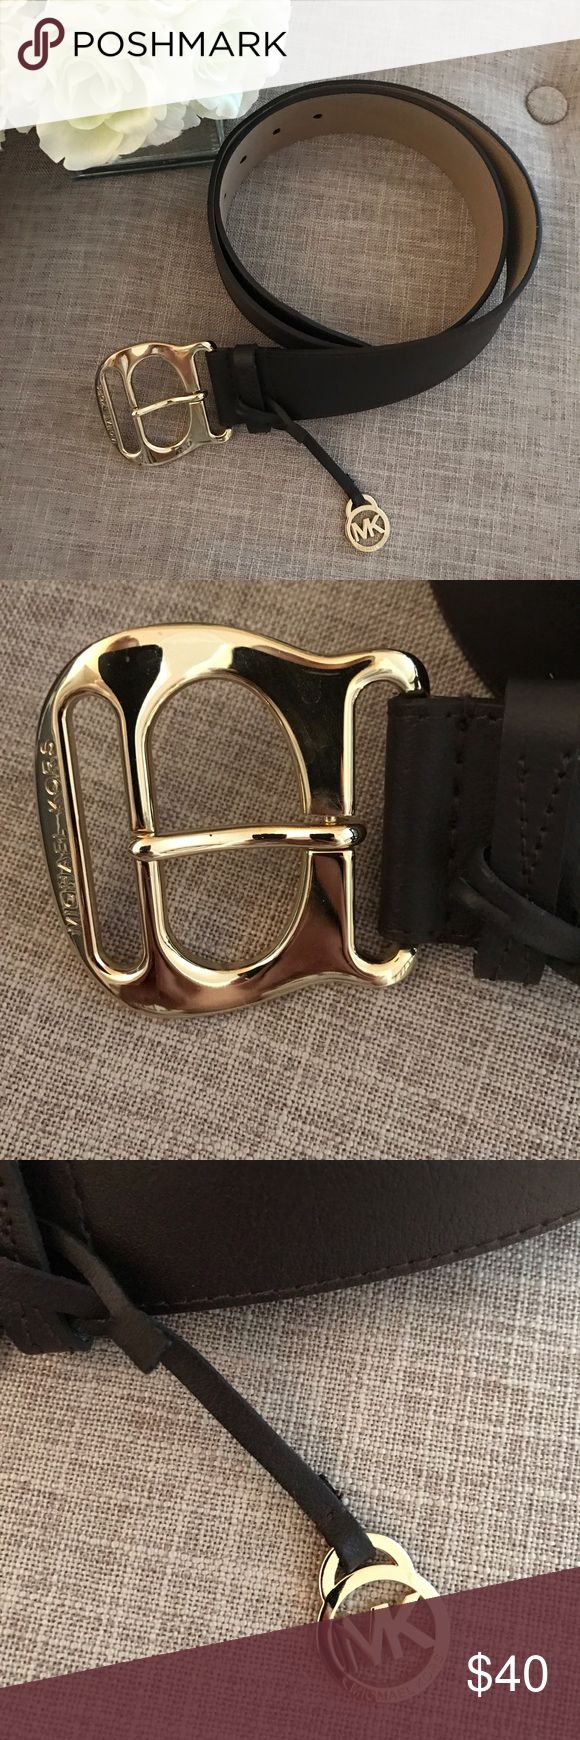 MK brown and gold leather belt Worn once. Dark chocolate brown with gold buckle and charm. No wear or scratches. In perfect condition! From a pet free and smoke free home. Like this item? MAKE ME AN OFFRER! Michael Kors Accessories Belts